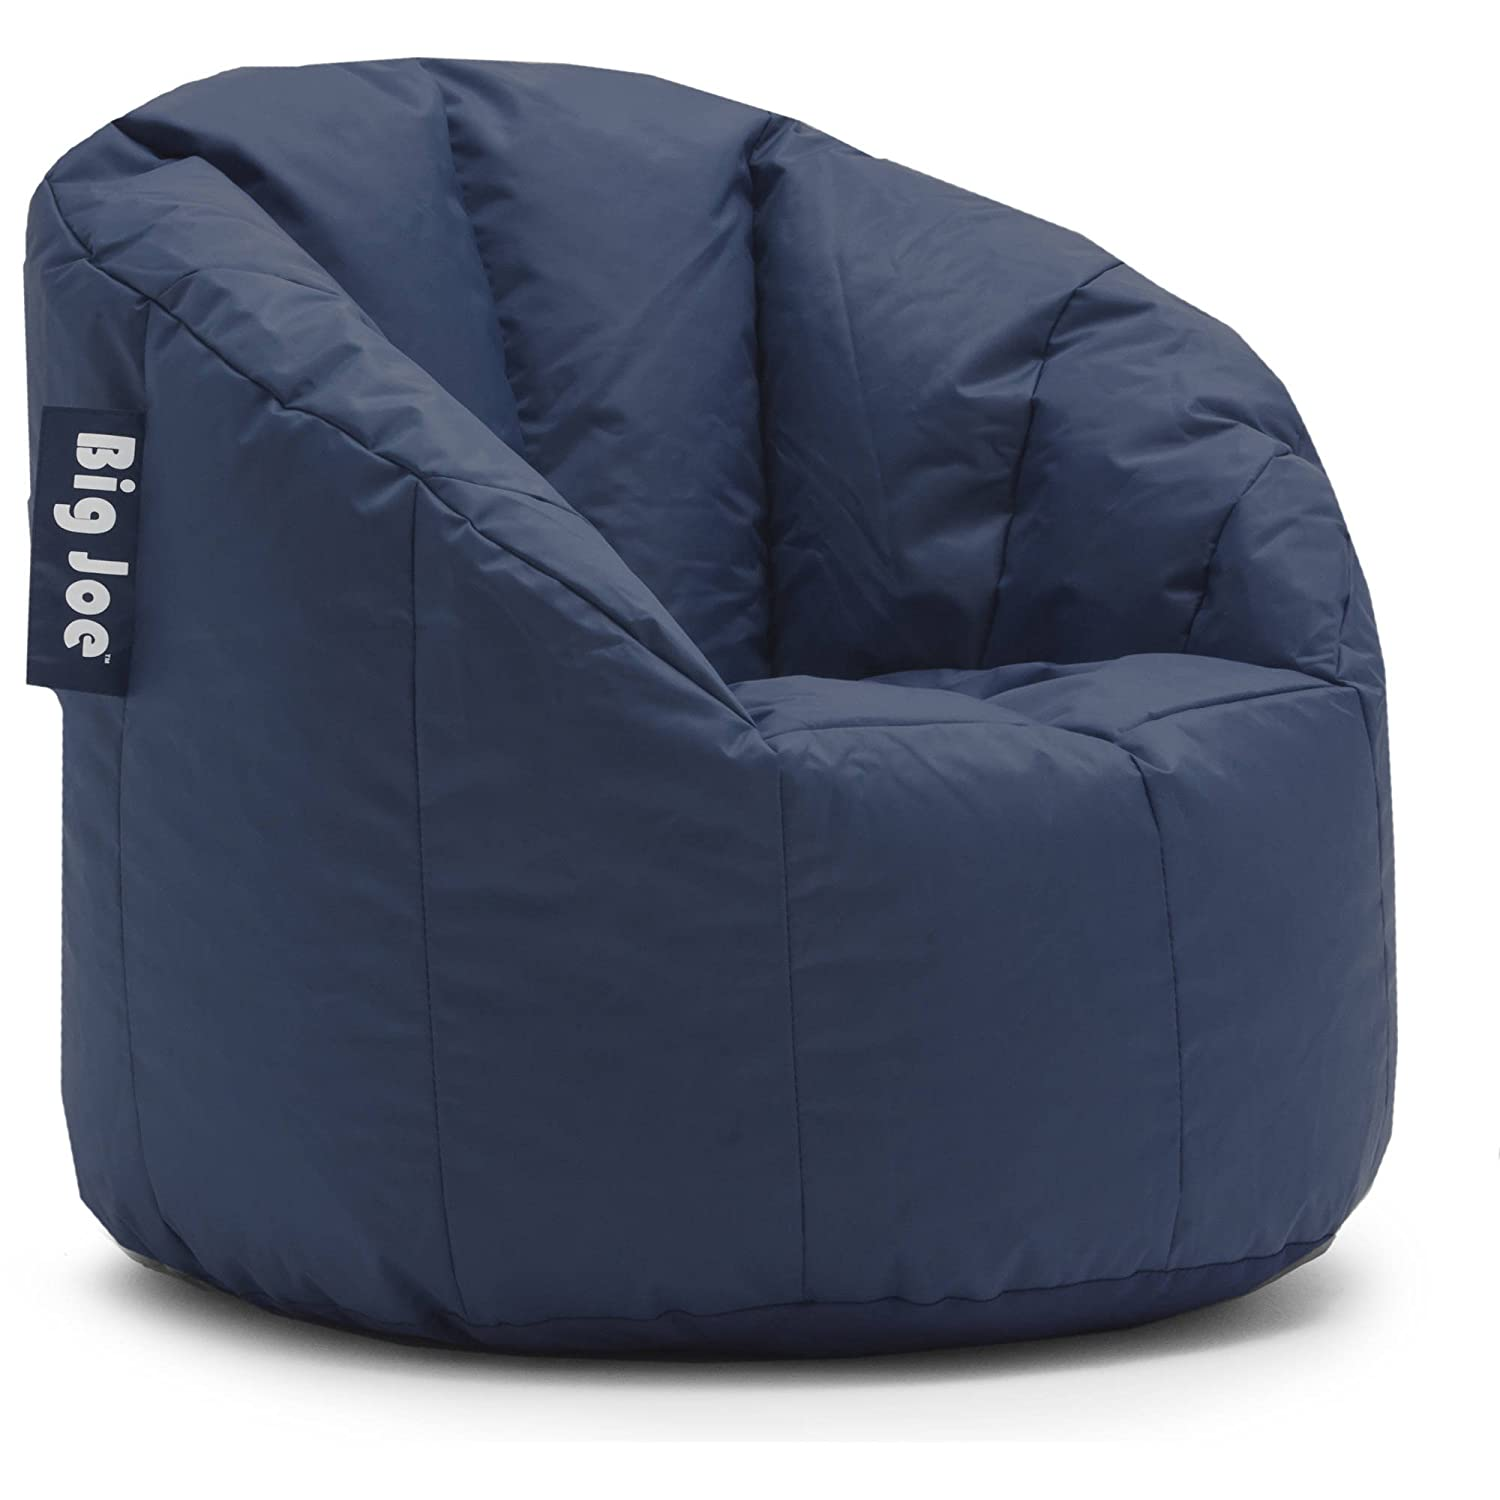 Big Joe Milano Bean Bag Chair Multiple Colors Provides Ultimate Comfort Great For Any